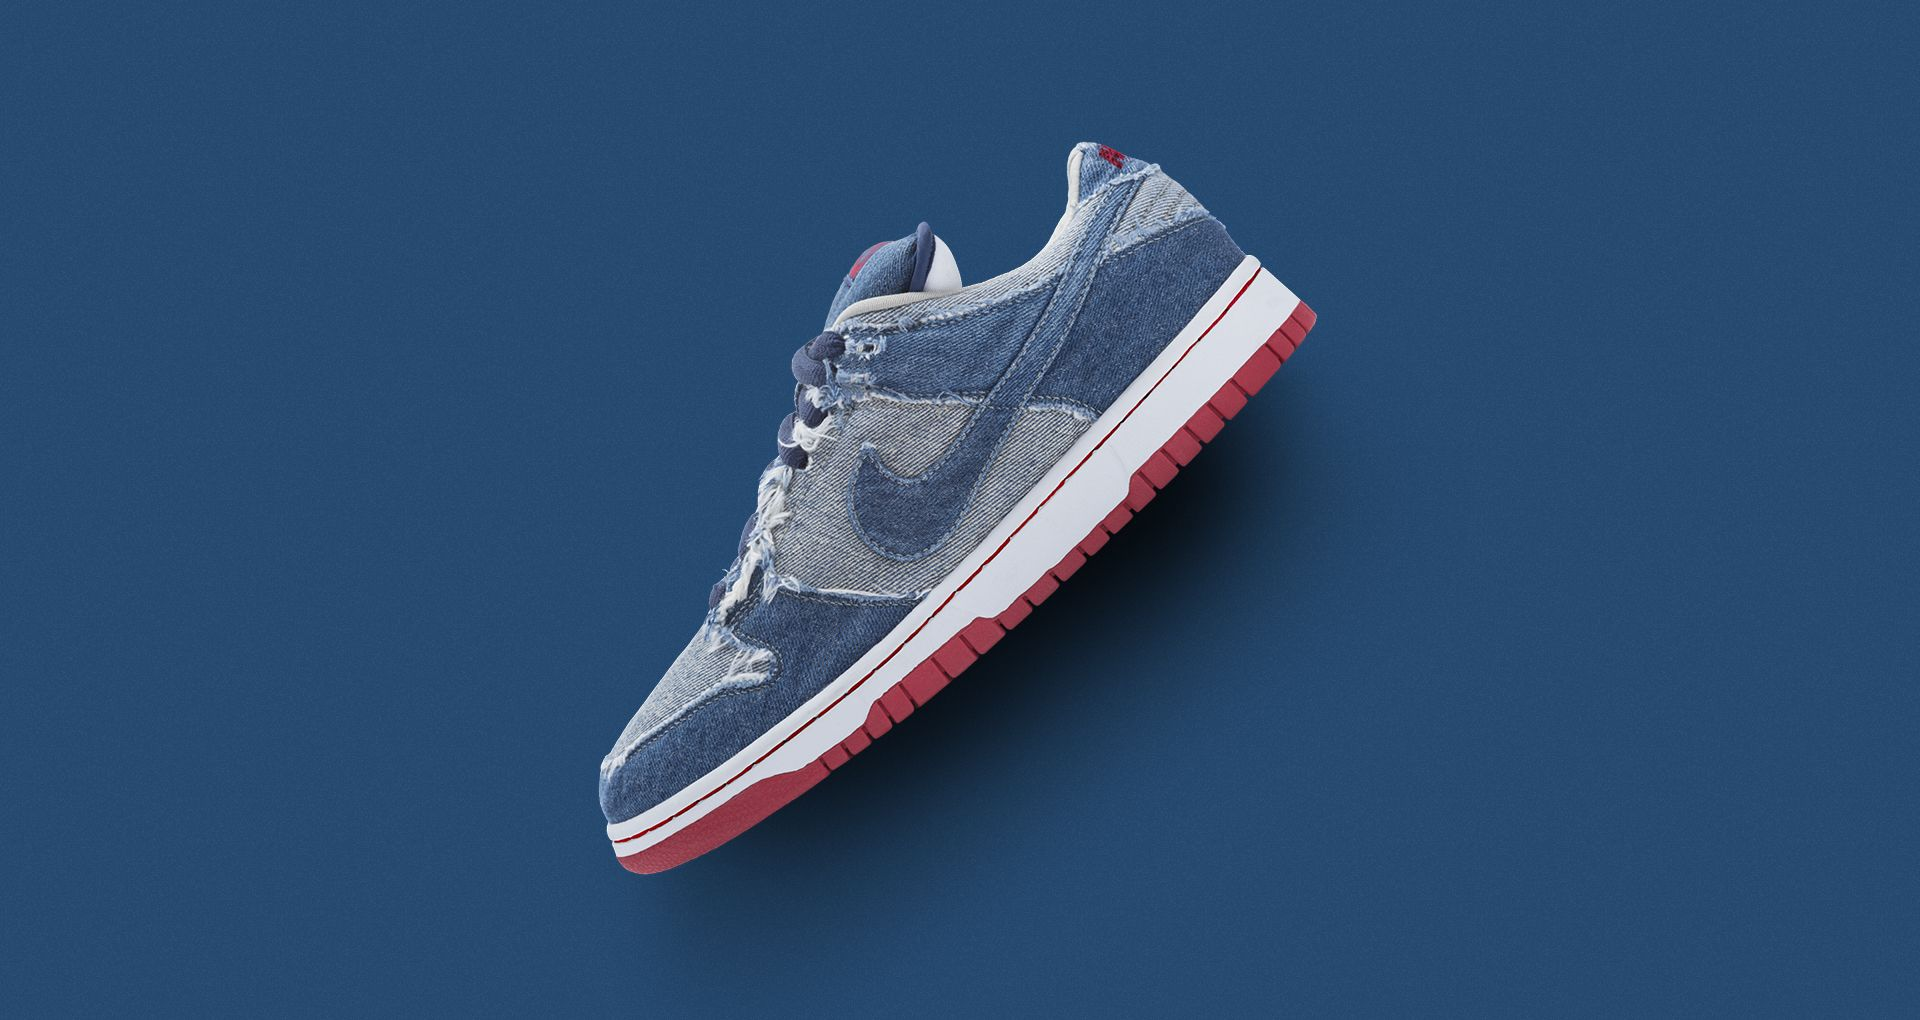 48a235de69d0 In celebration of the 15-year anniversary of the Nike SB Dunk